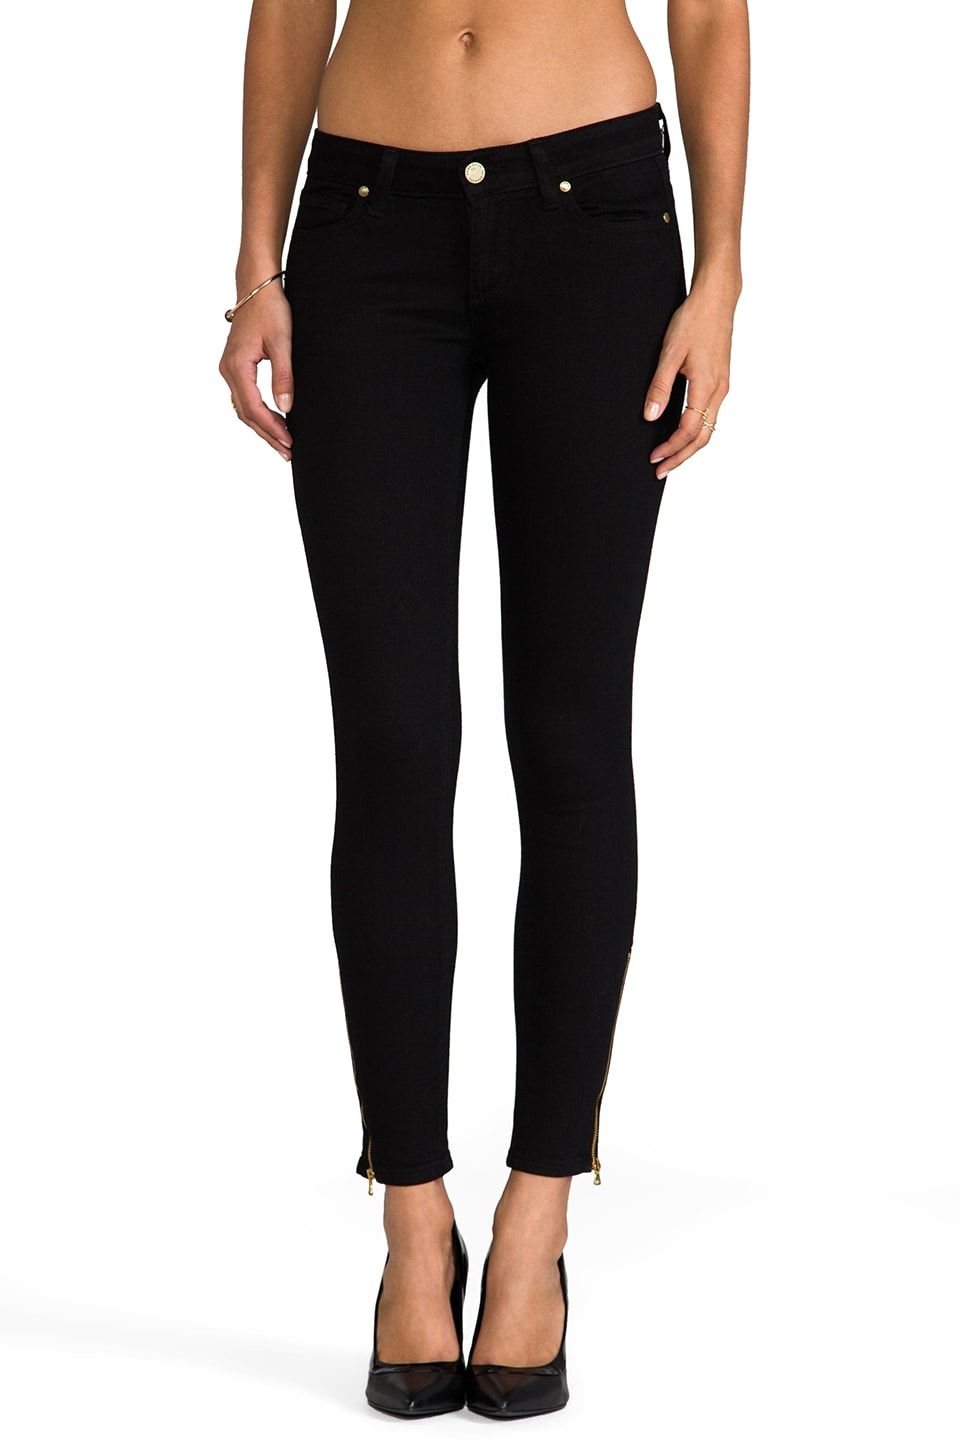 Paige Denim Verdugo Ankle Zip in Black